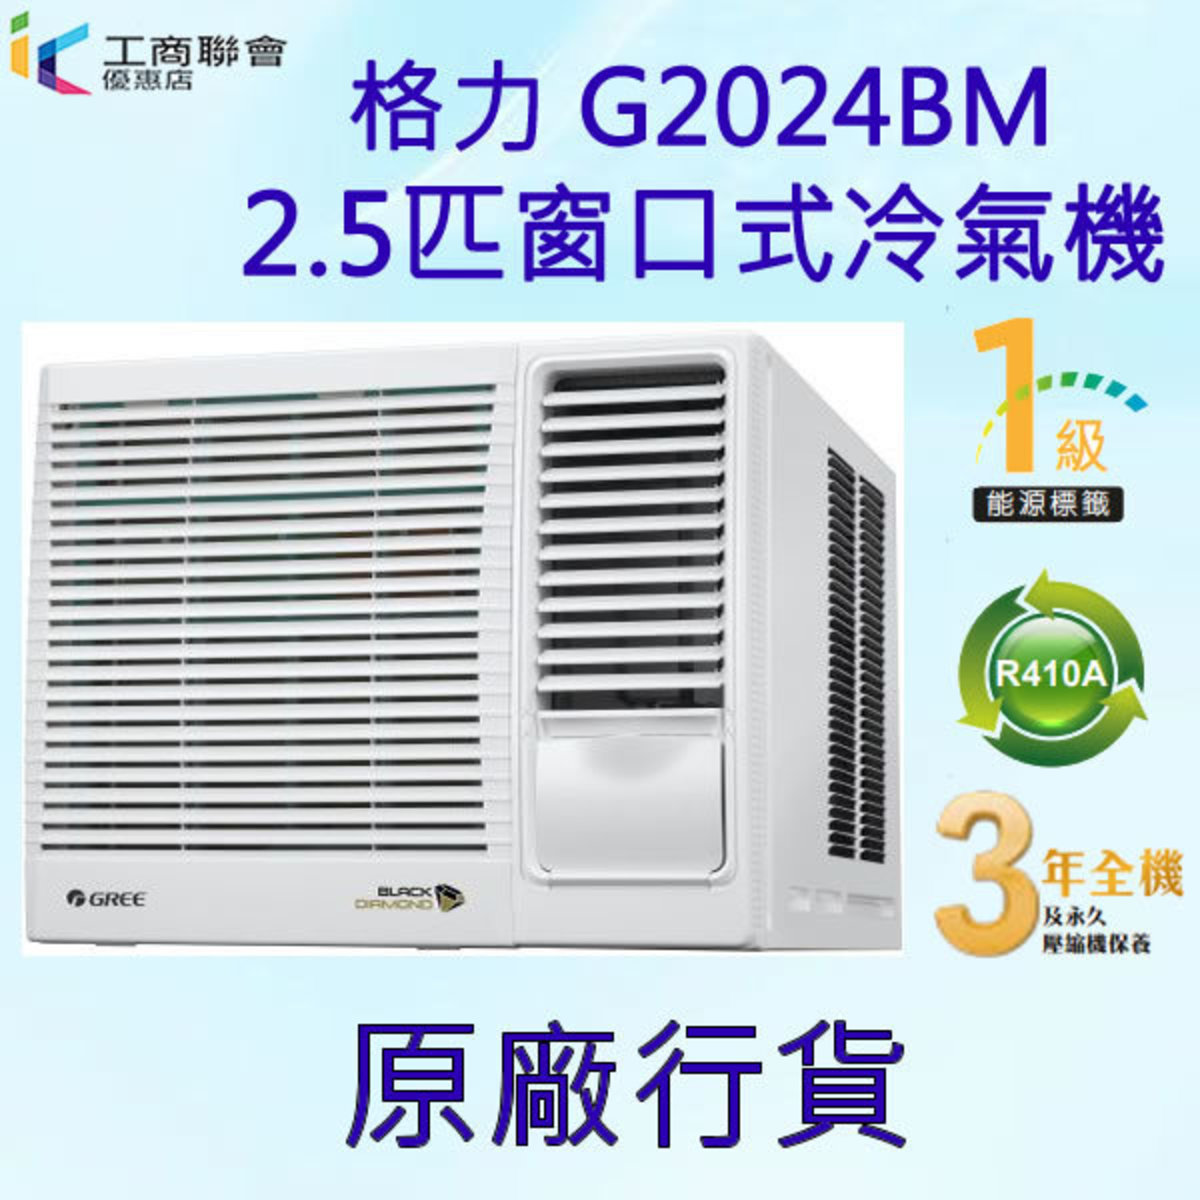 G2024BM 2.5HP Window Type Air Conditioner (Free removal service)